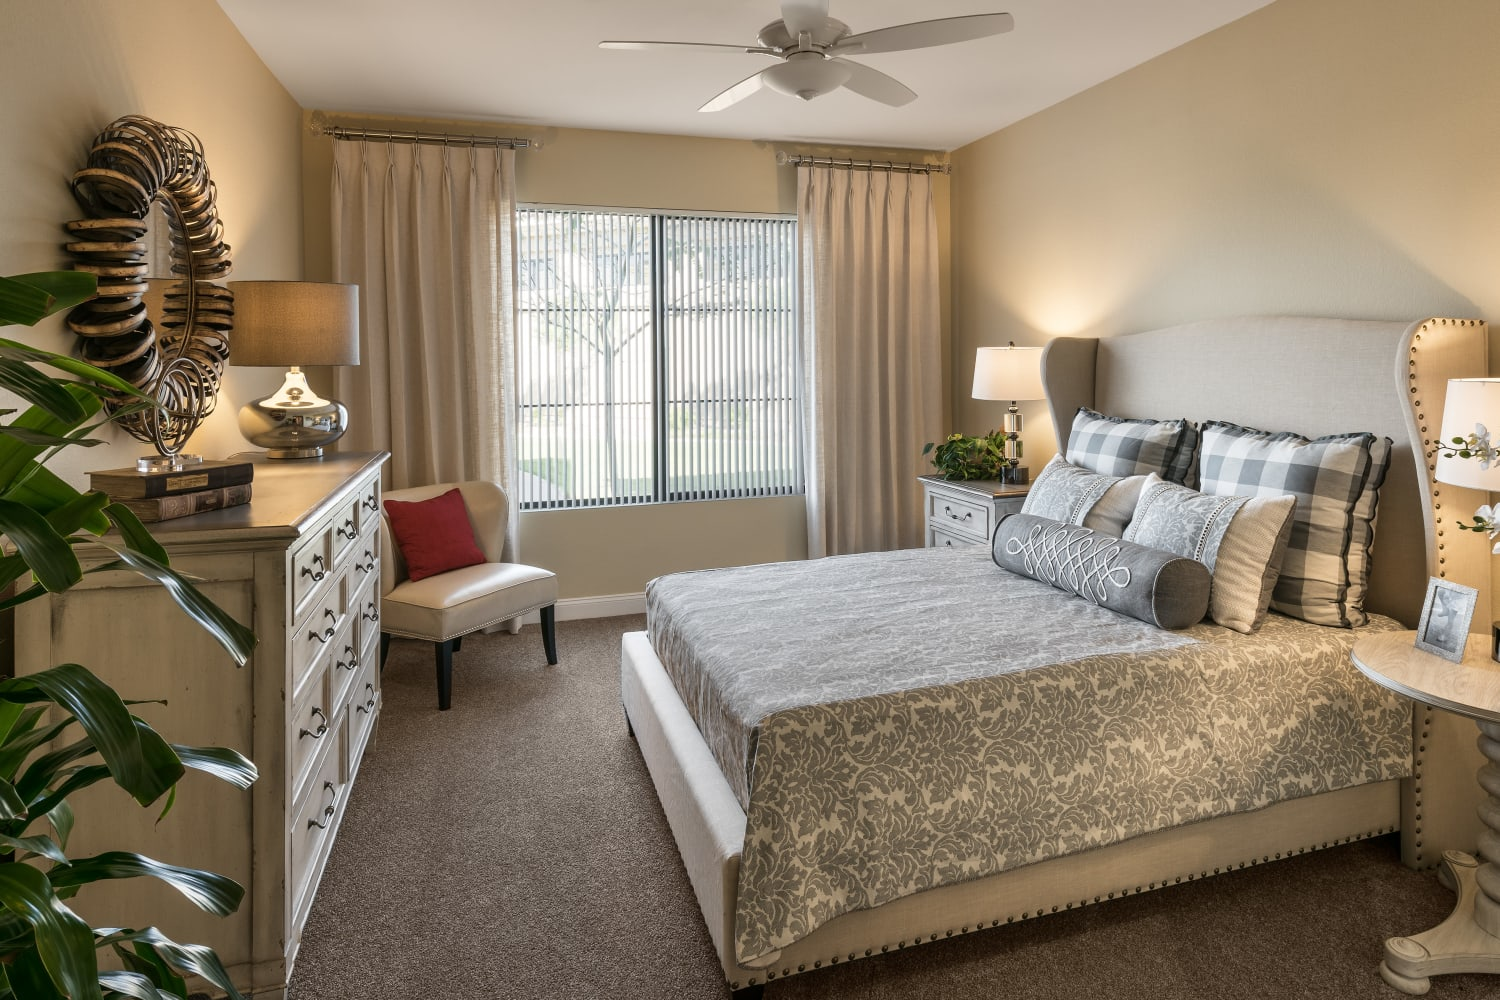 Two Bedroom  San Valencia in Chandler, Arizona